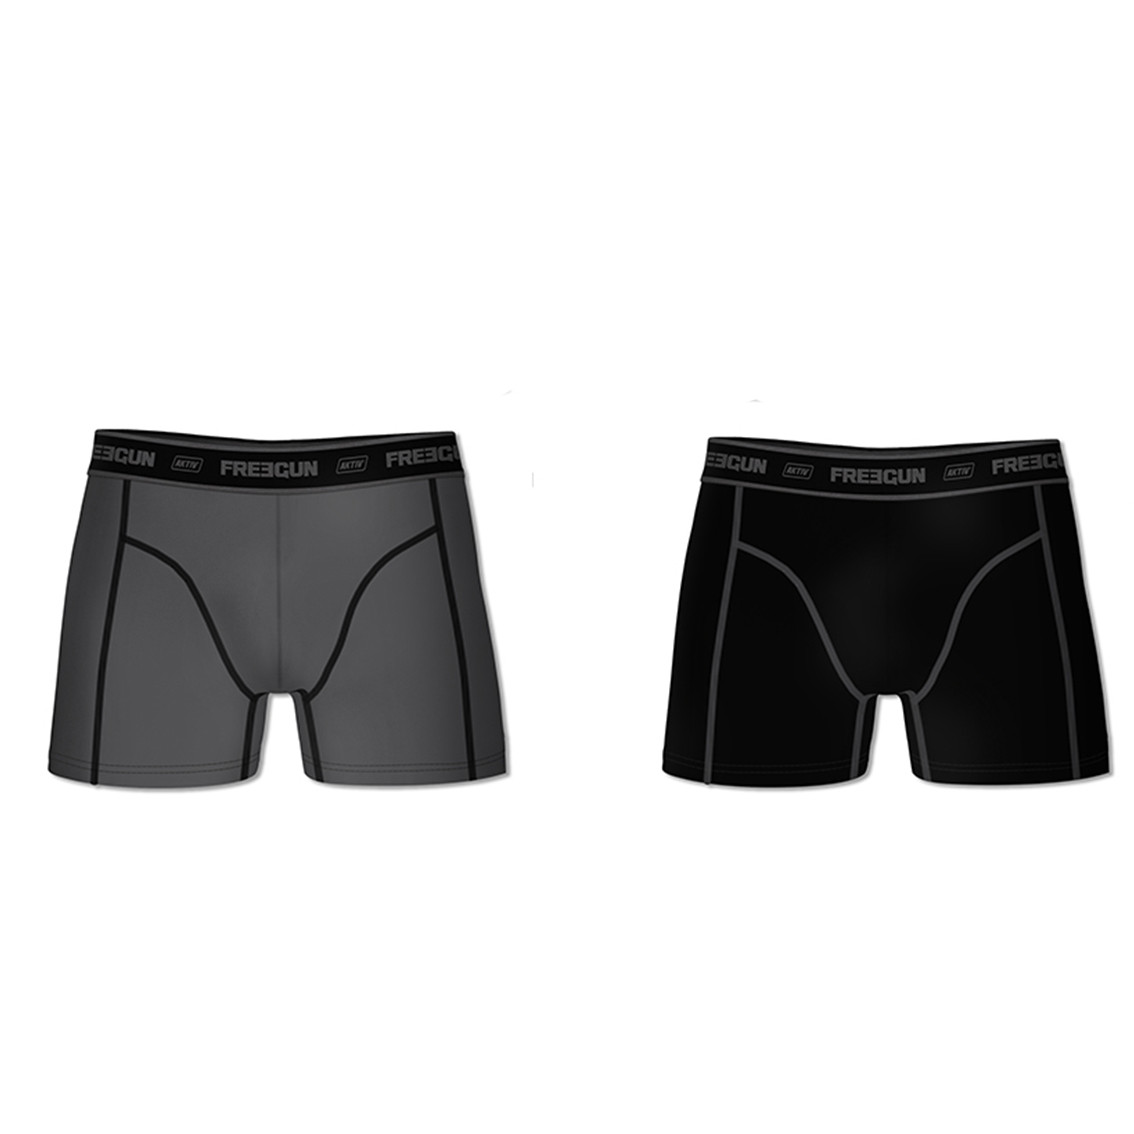 Lot de 2 boxers coton homme aktiv gris et noir (photo)